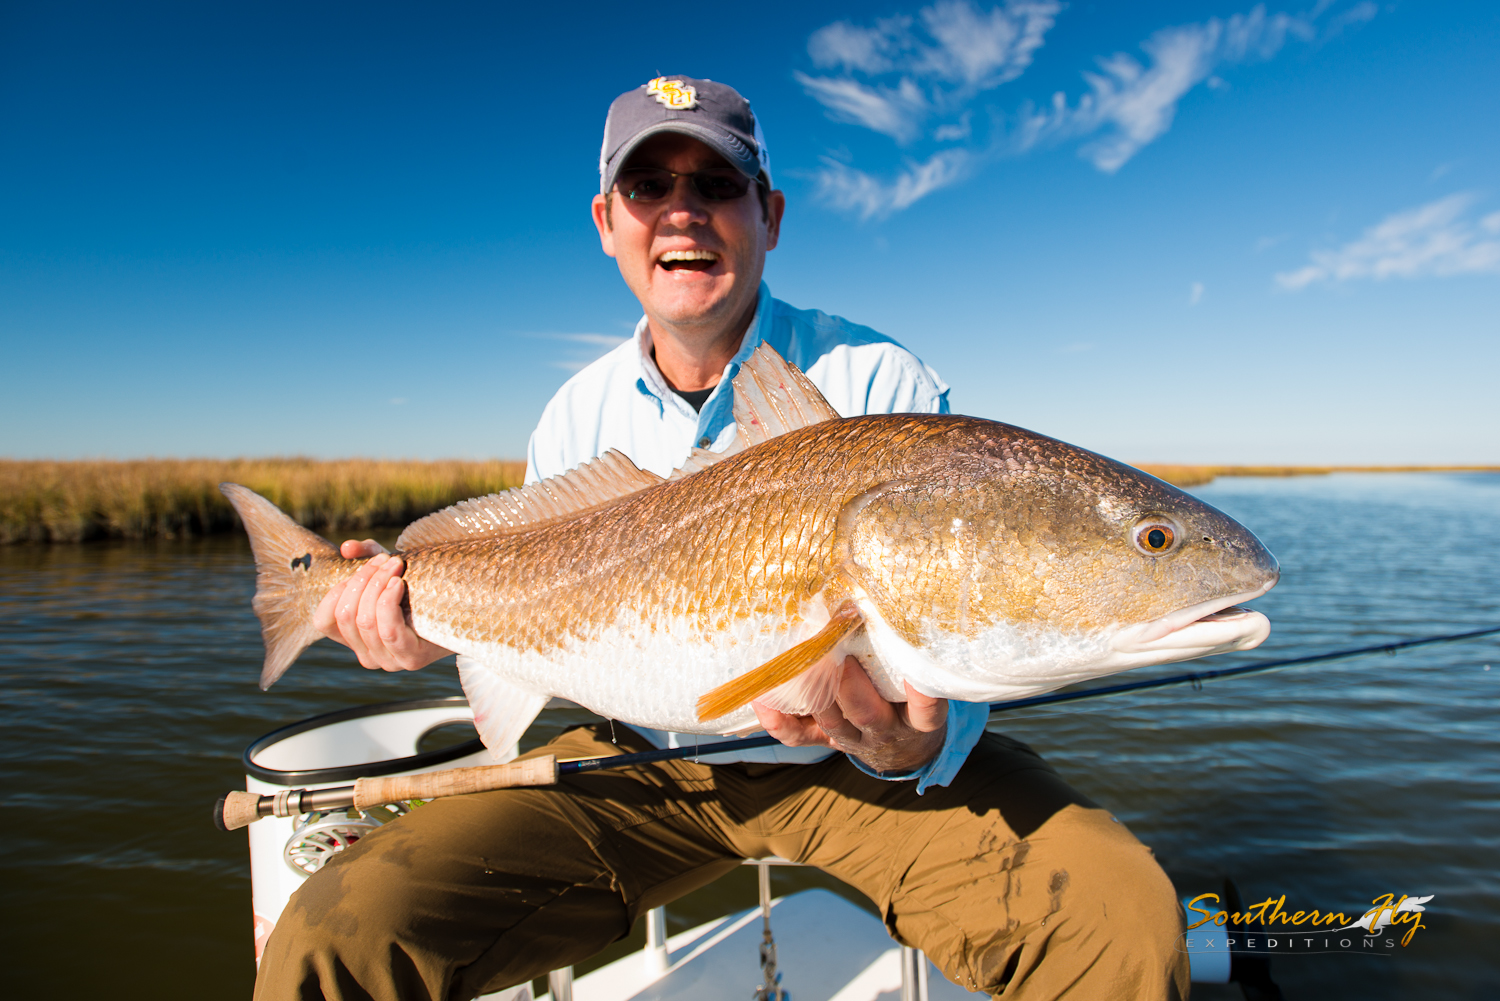 Fly Fishing new orleans la with Southern Fly Expeditions fishing charter guide